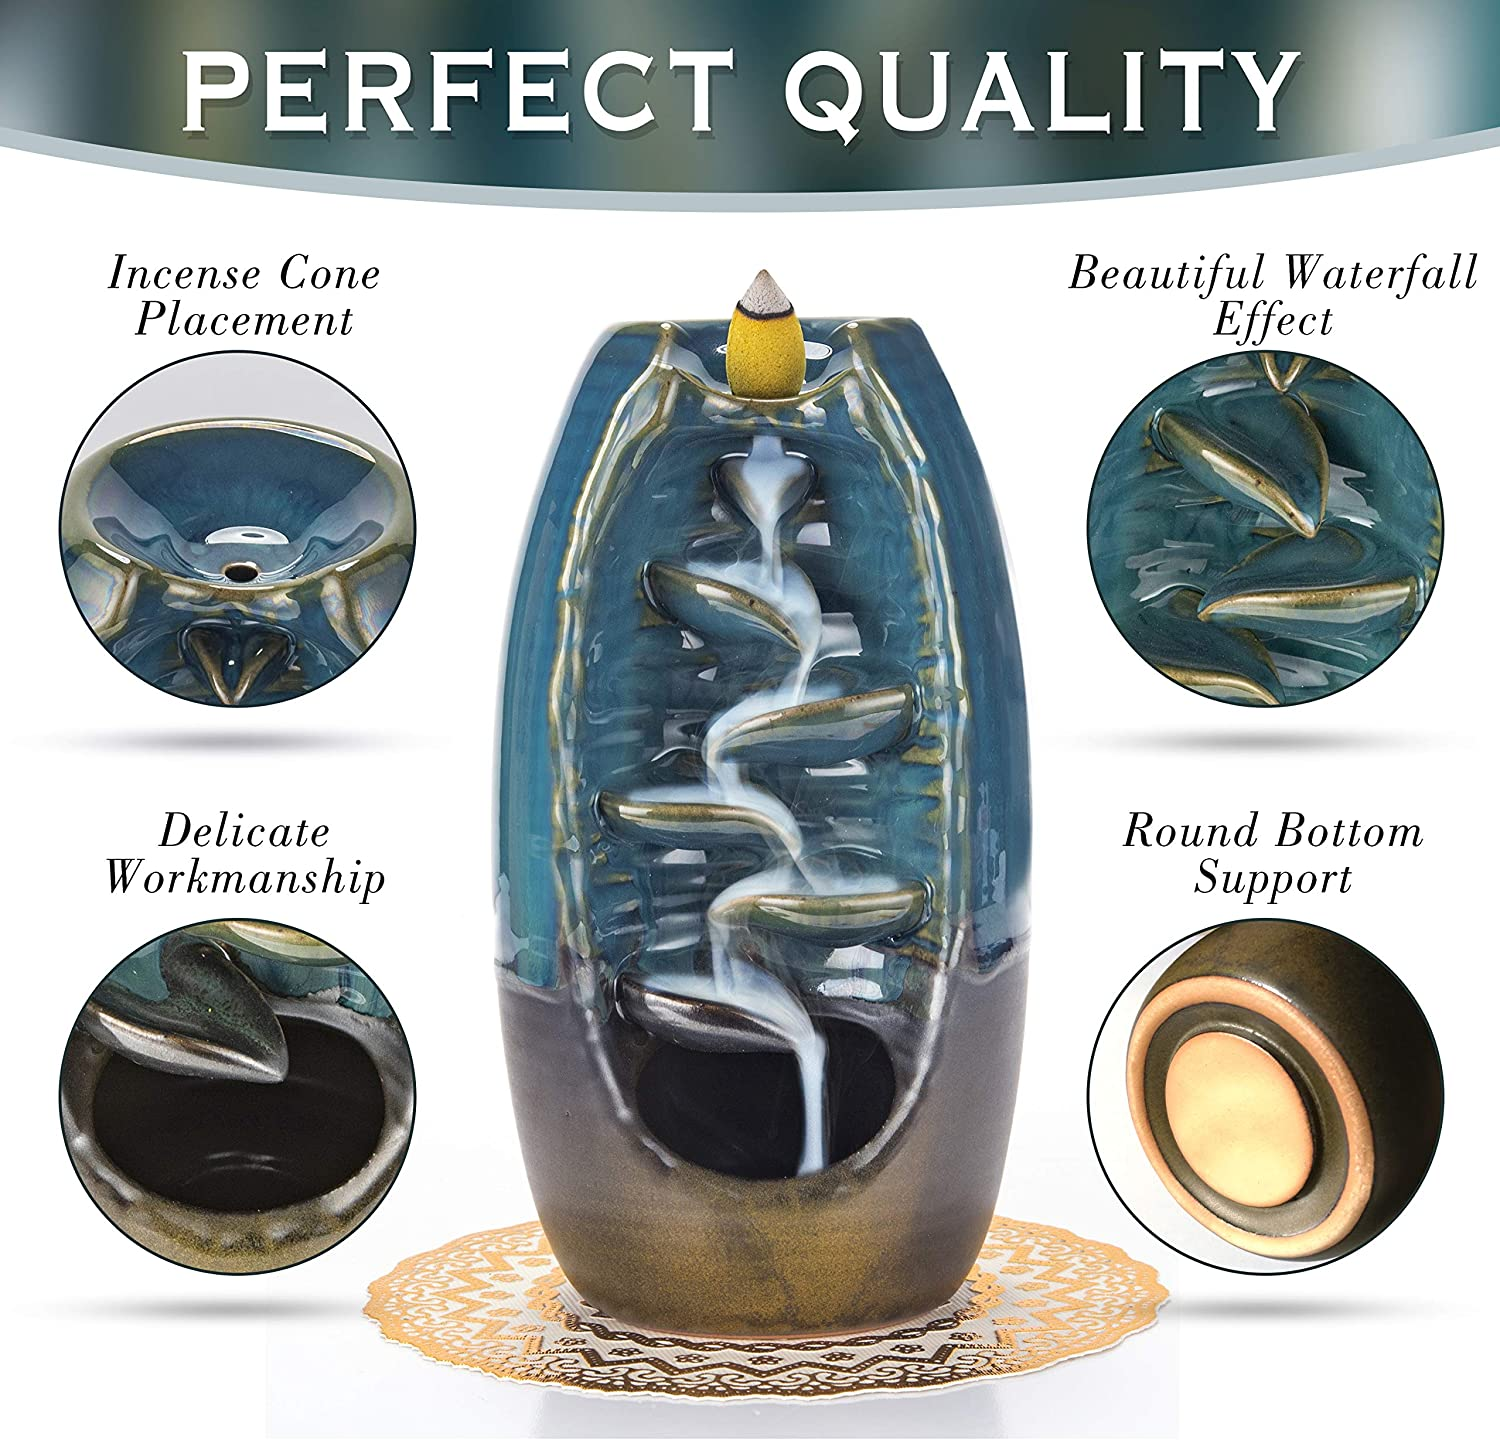 Luxxis Waterfall Incense Burner for Home Decor Ornament Aromatherapy Elegant Place Mat 100 Bonus Cones with Carrying Satchel Ceramic Backflow Incense Holder Meditation Relaxation